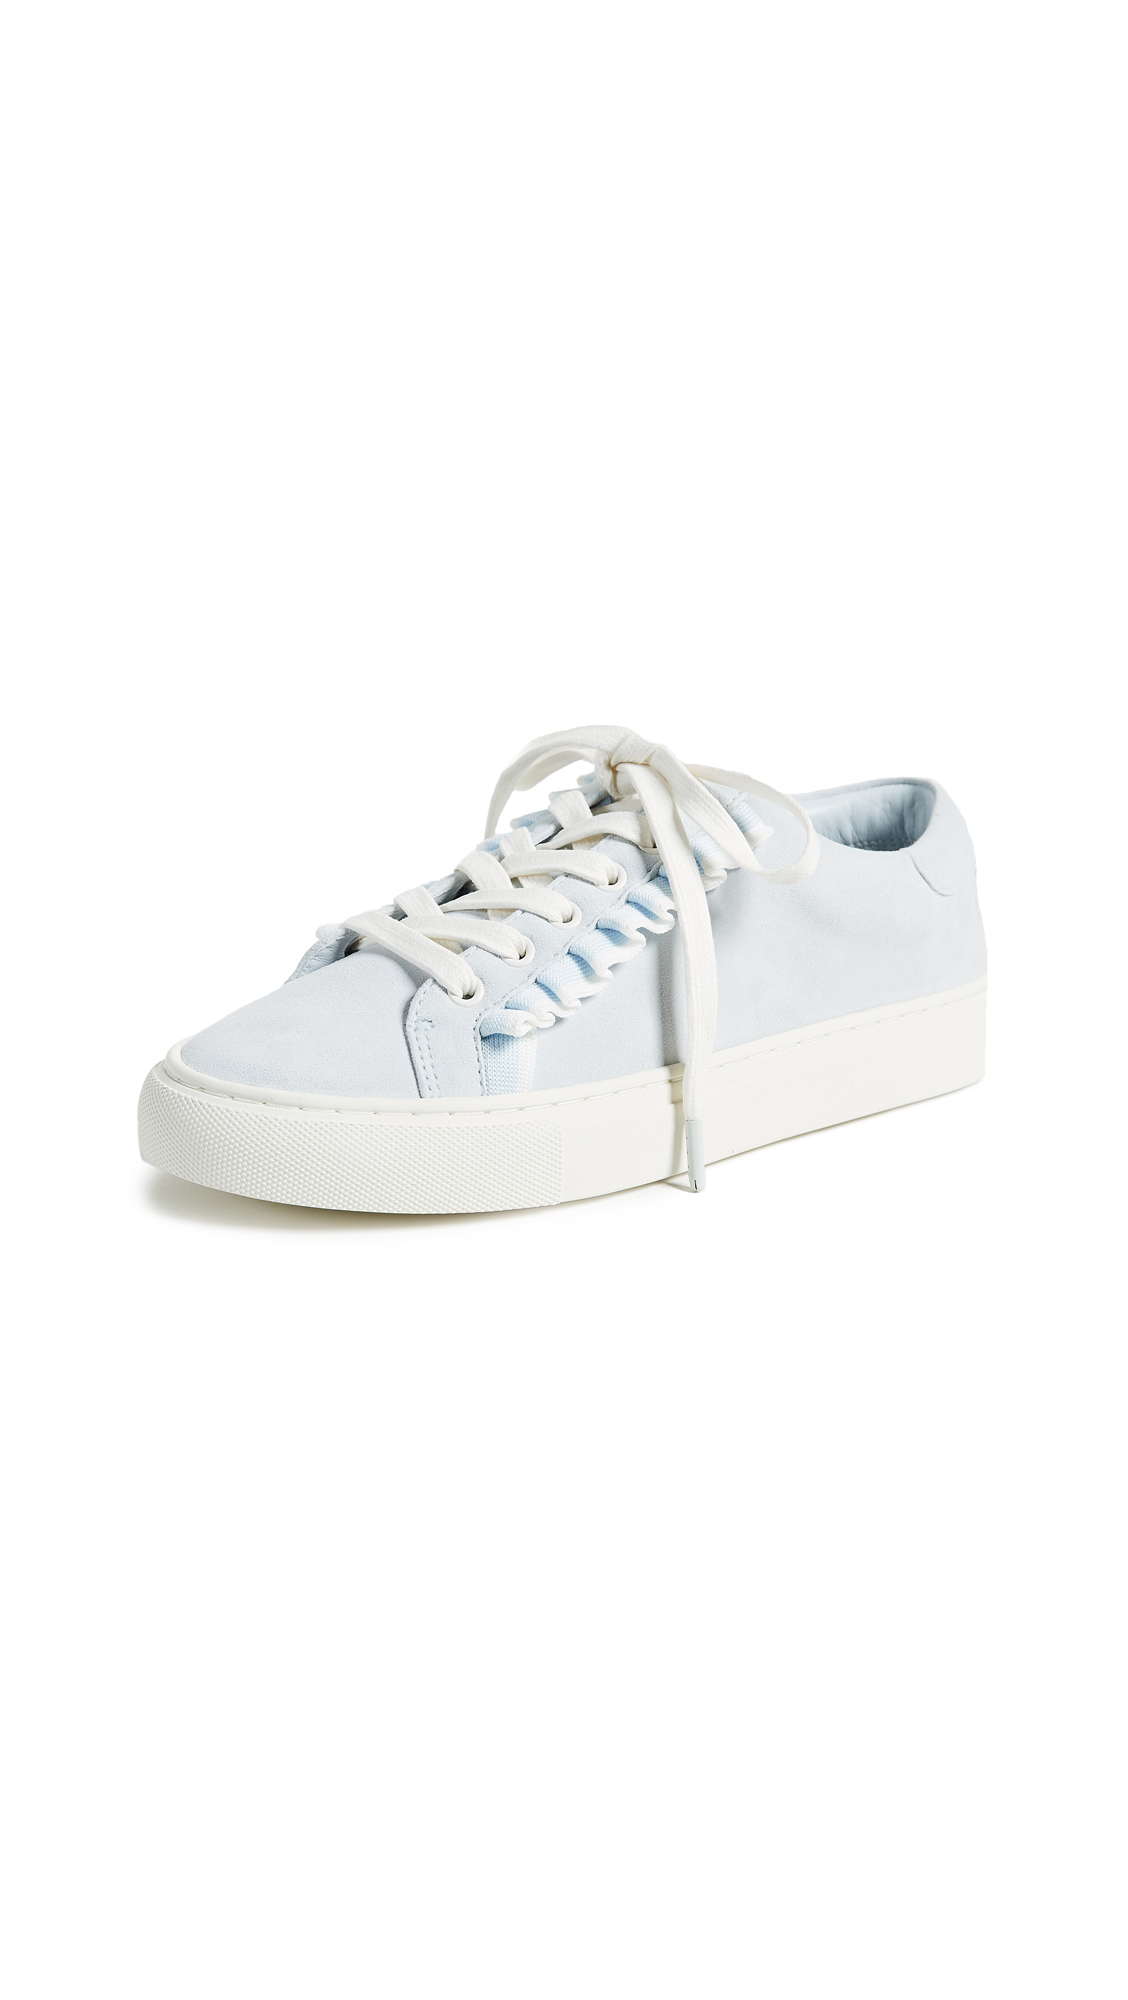 Photo of Tory Sport Ruffle Sneakers - buy Tory Sport shoes